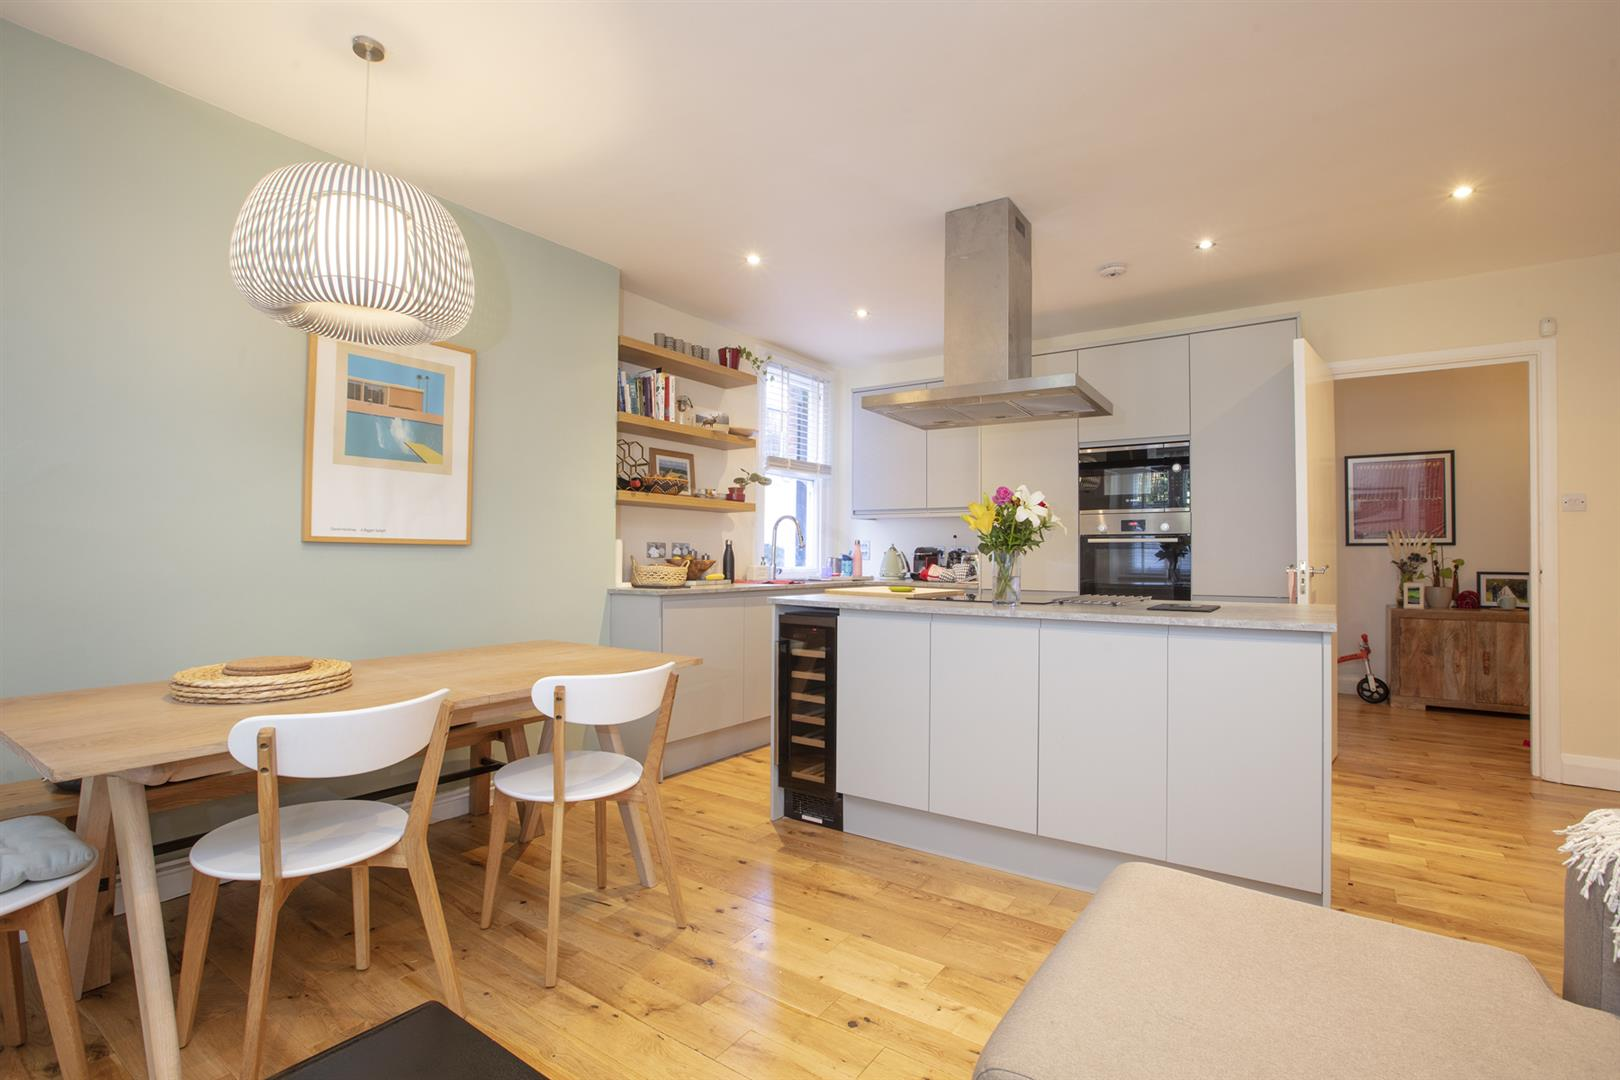 Flat - Conversion For Sale in Crystal Palace Park Road, Sydenham, SE26 698 view2